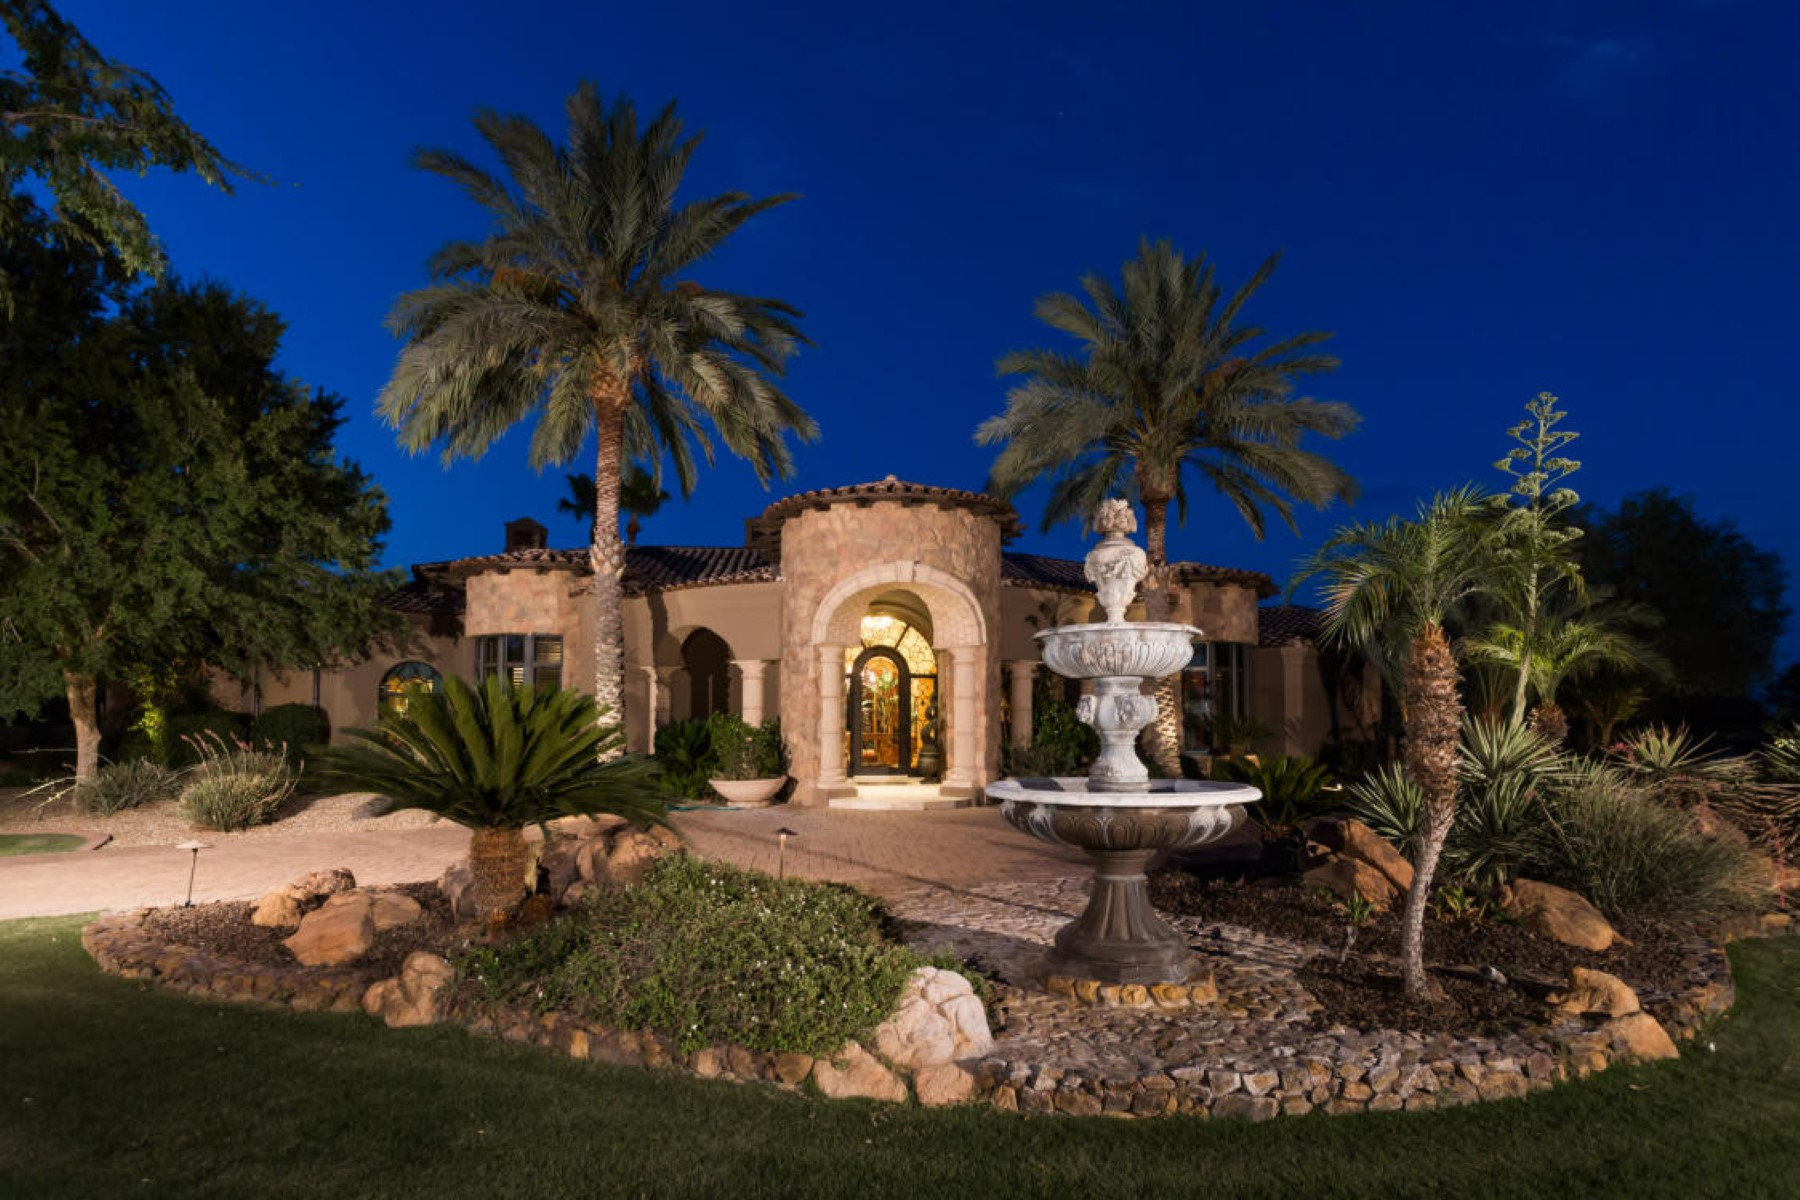 Casa Unifamiliar por un Venta en Gorgeous Estate in Exclusive Guard Gated Paradise Valley Community 6615 N 66th Place Paradise Valley, Arizona, 85253 Estados Unidos